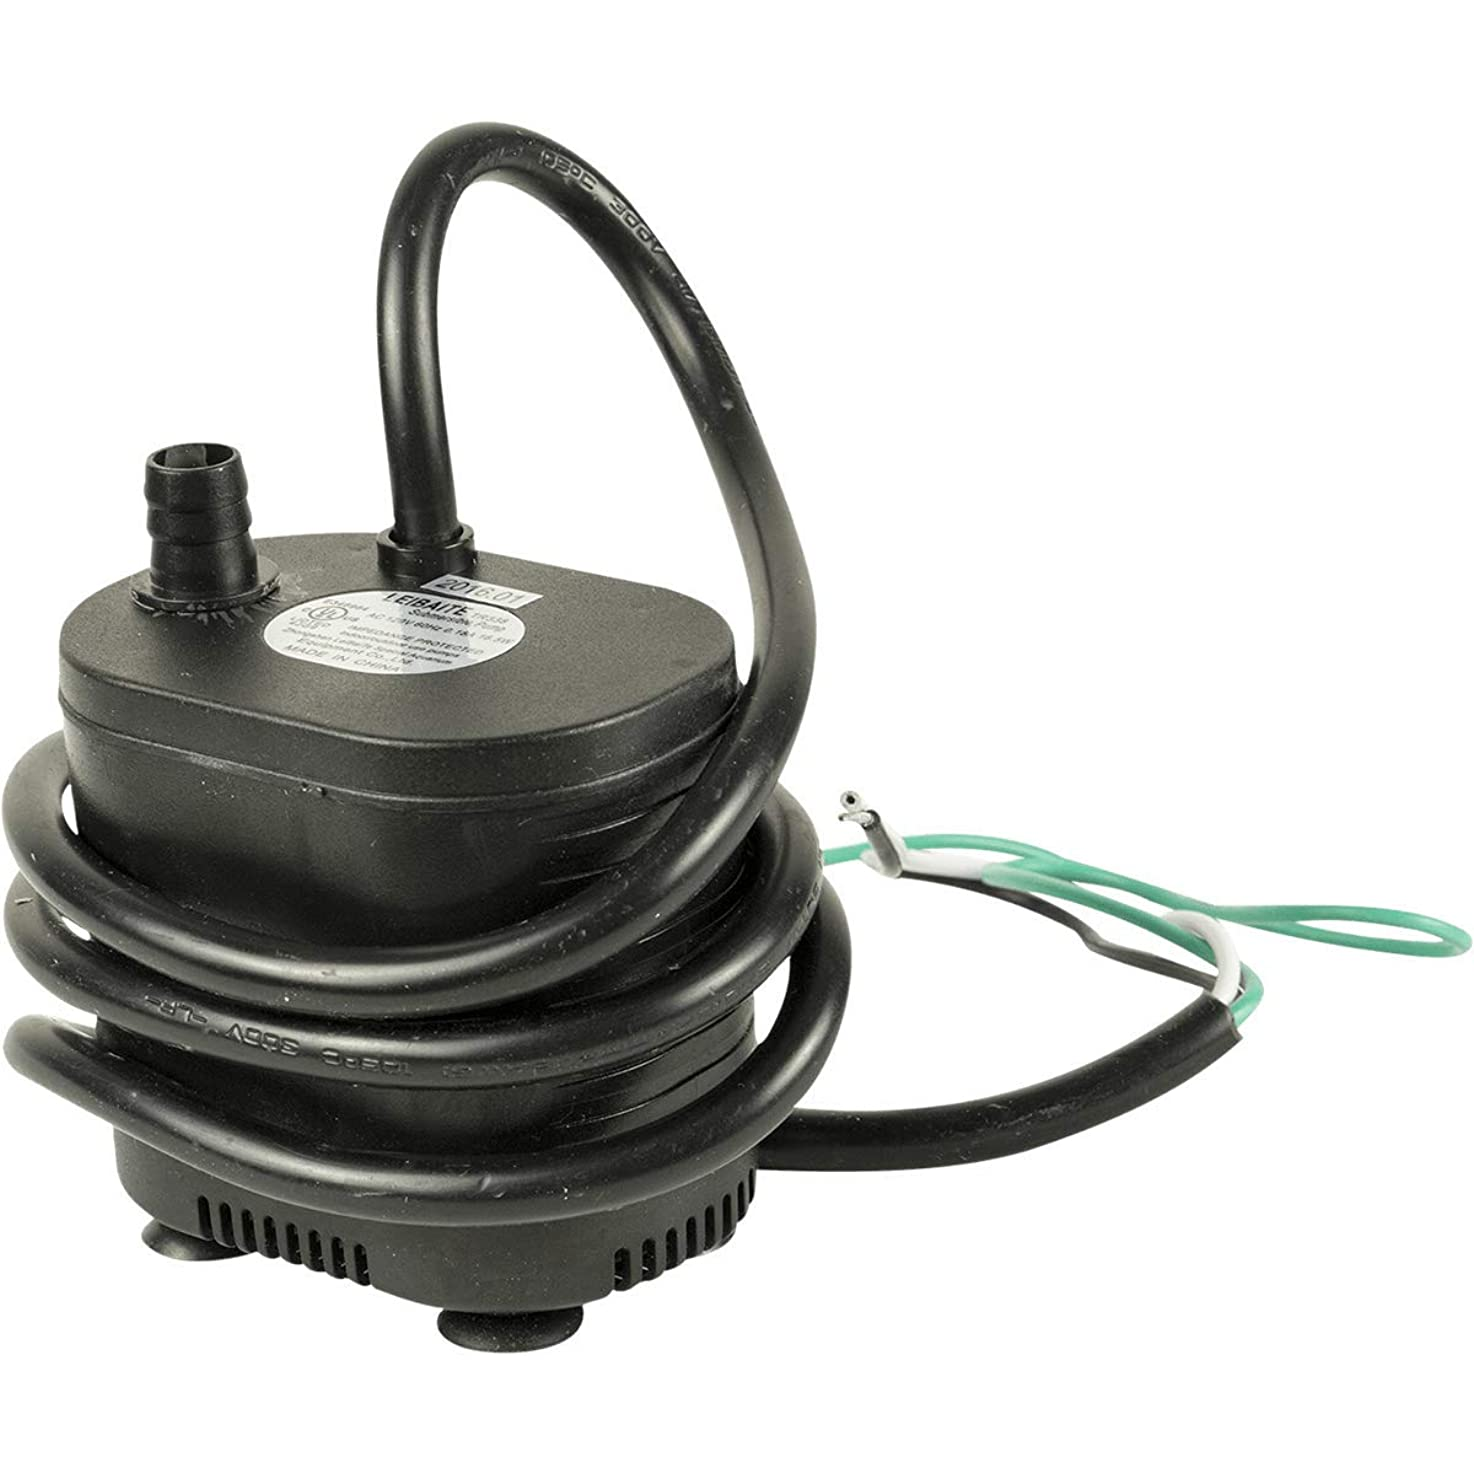 Honeywell Water Pump for Evaporative Cooler CO60PM godkhpqfwkvek9